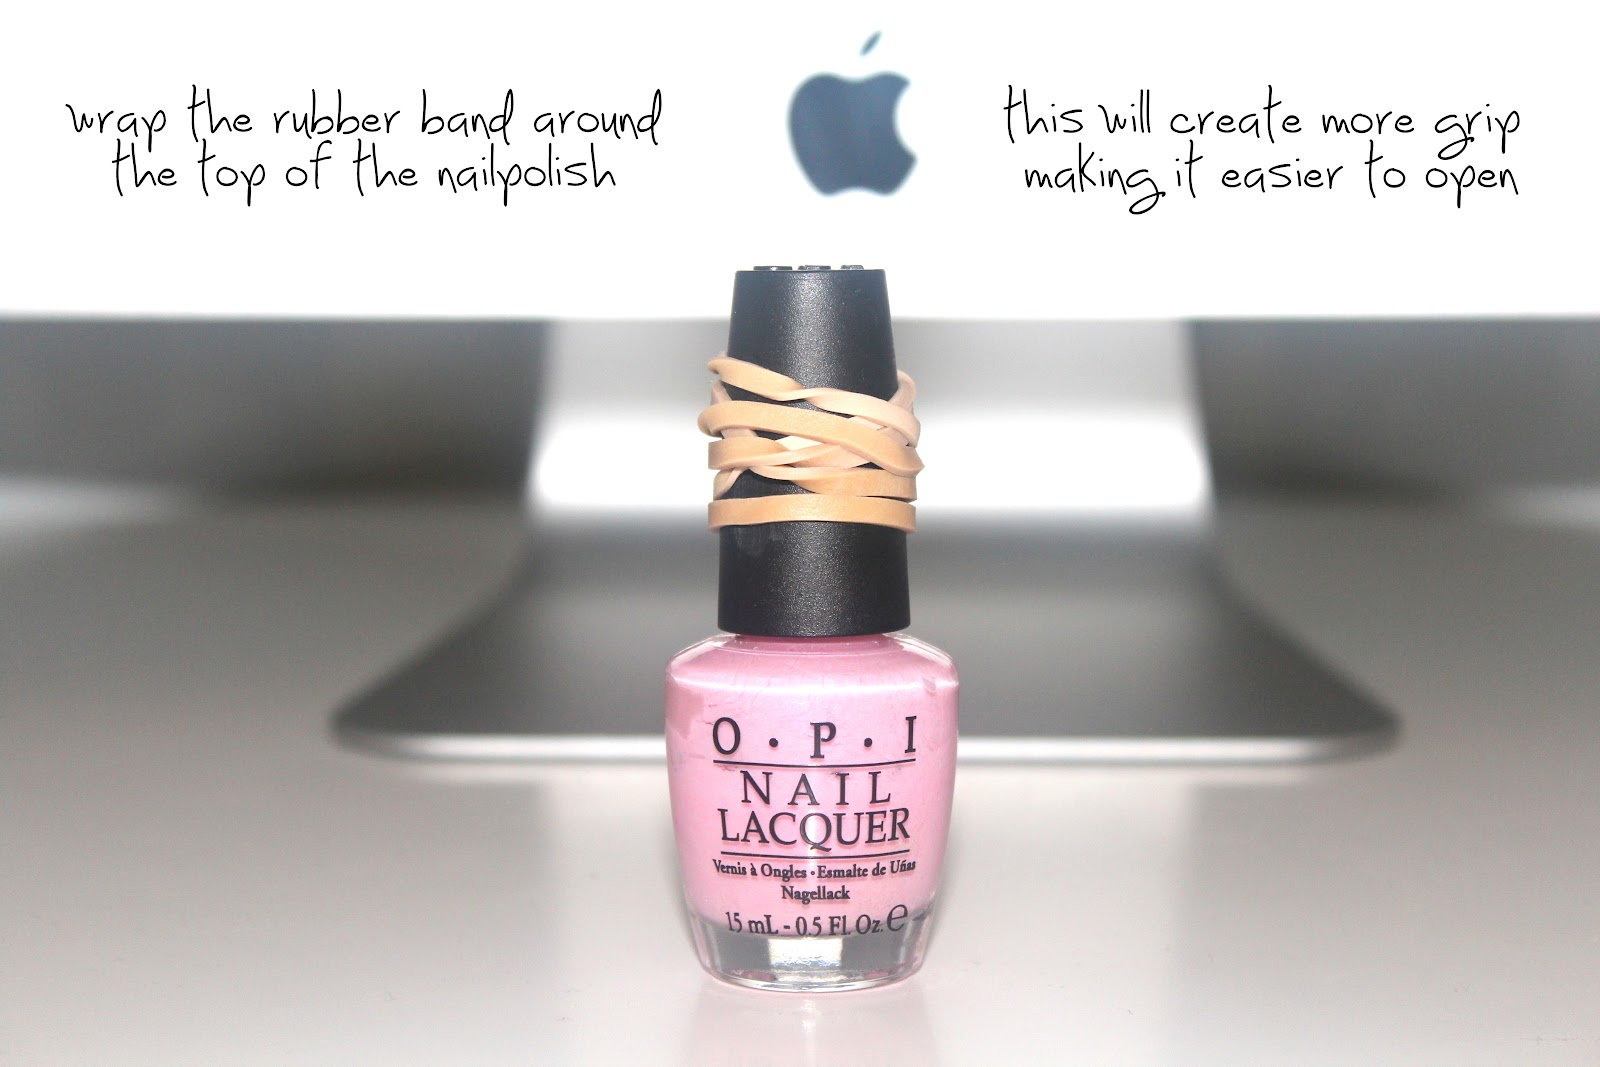 how to open witchery nail polish